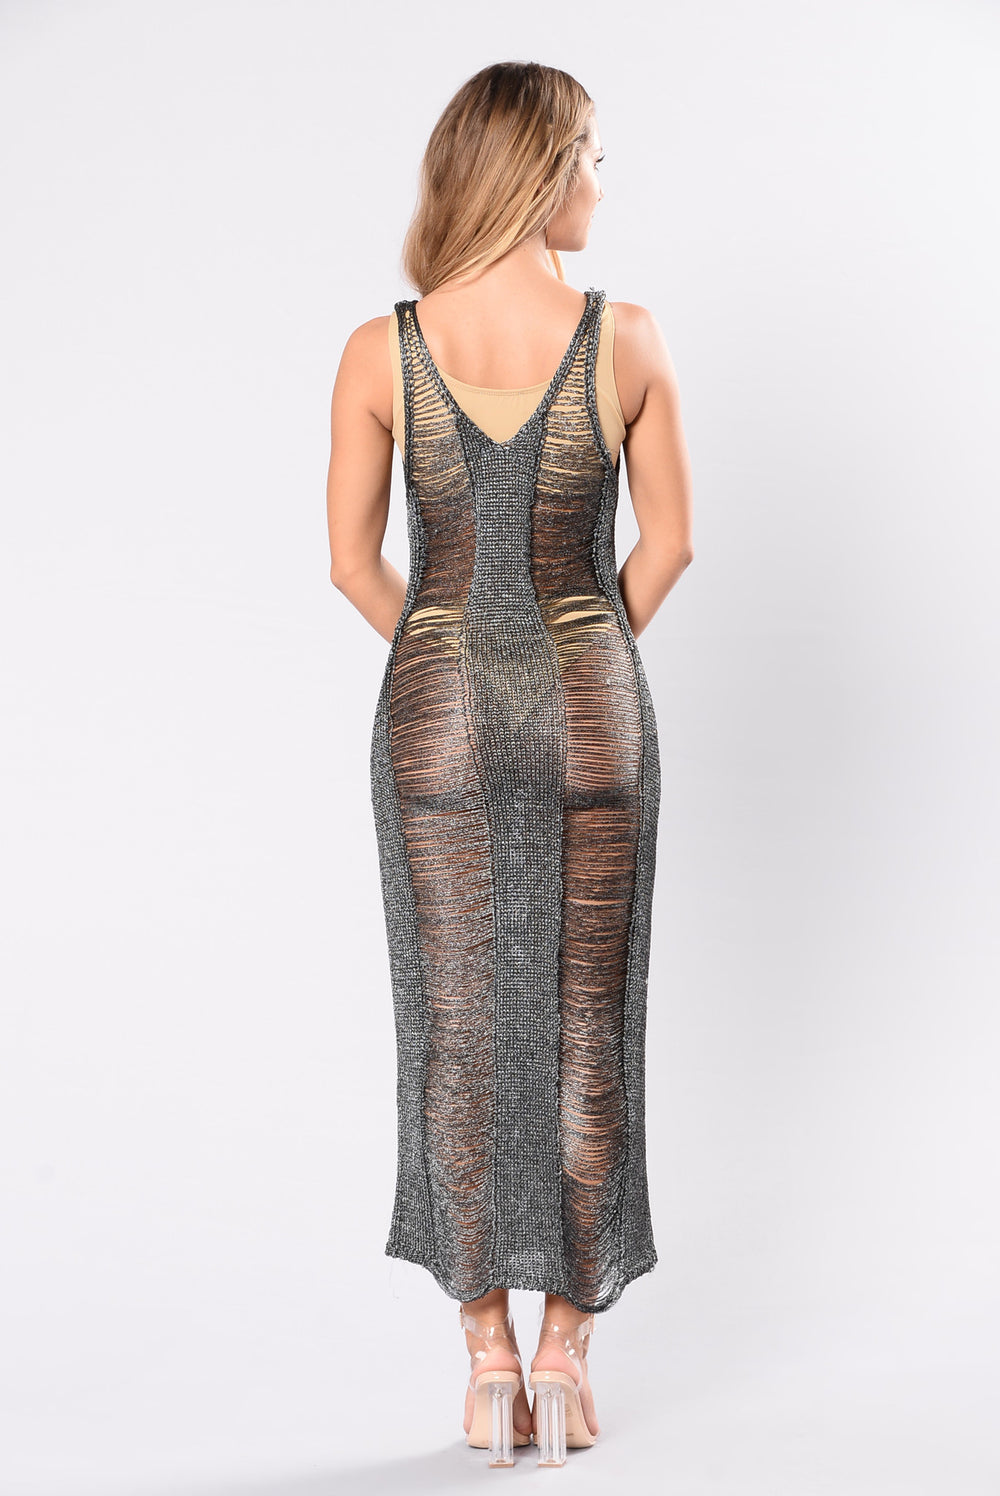 Maldive Cover Up Dress - Gunmetal